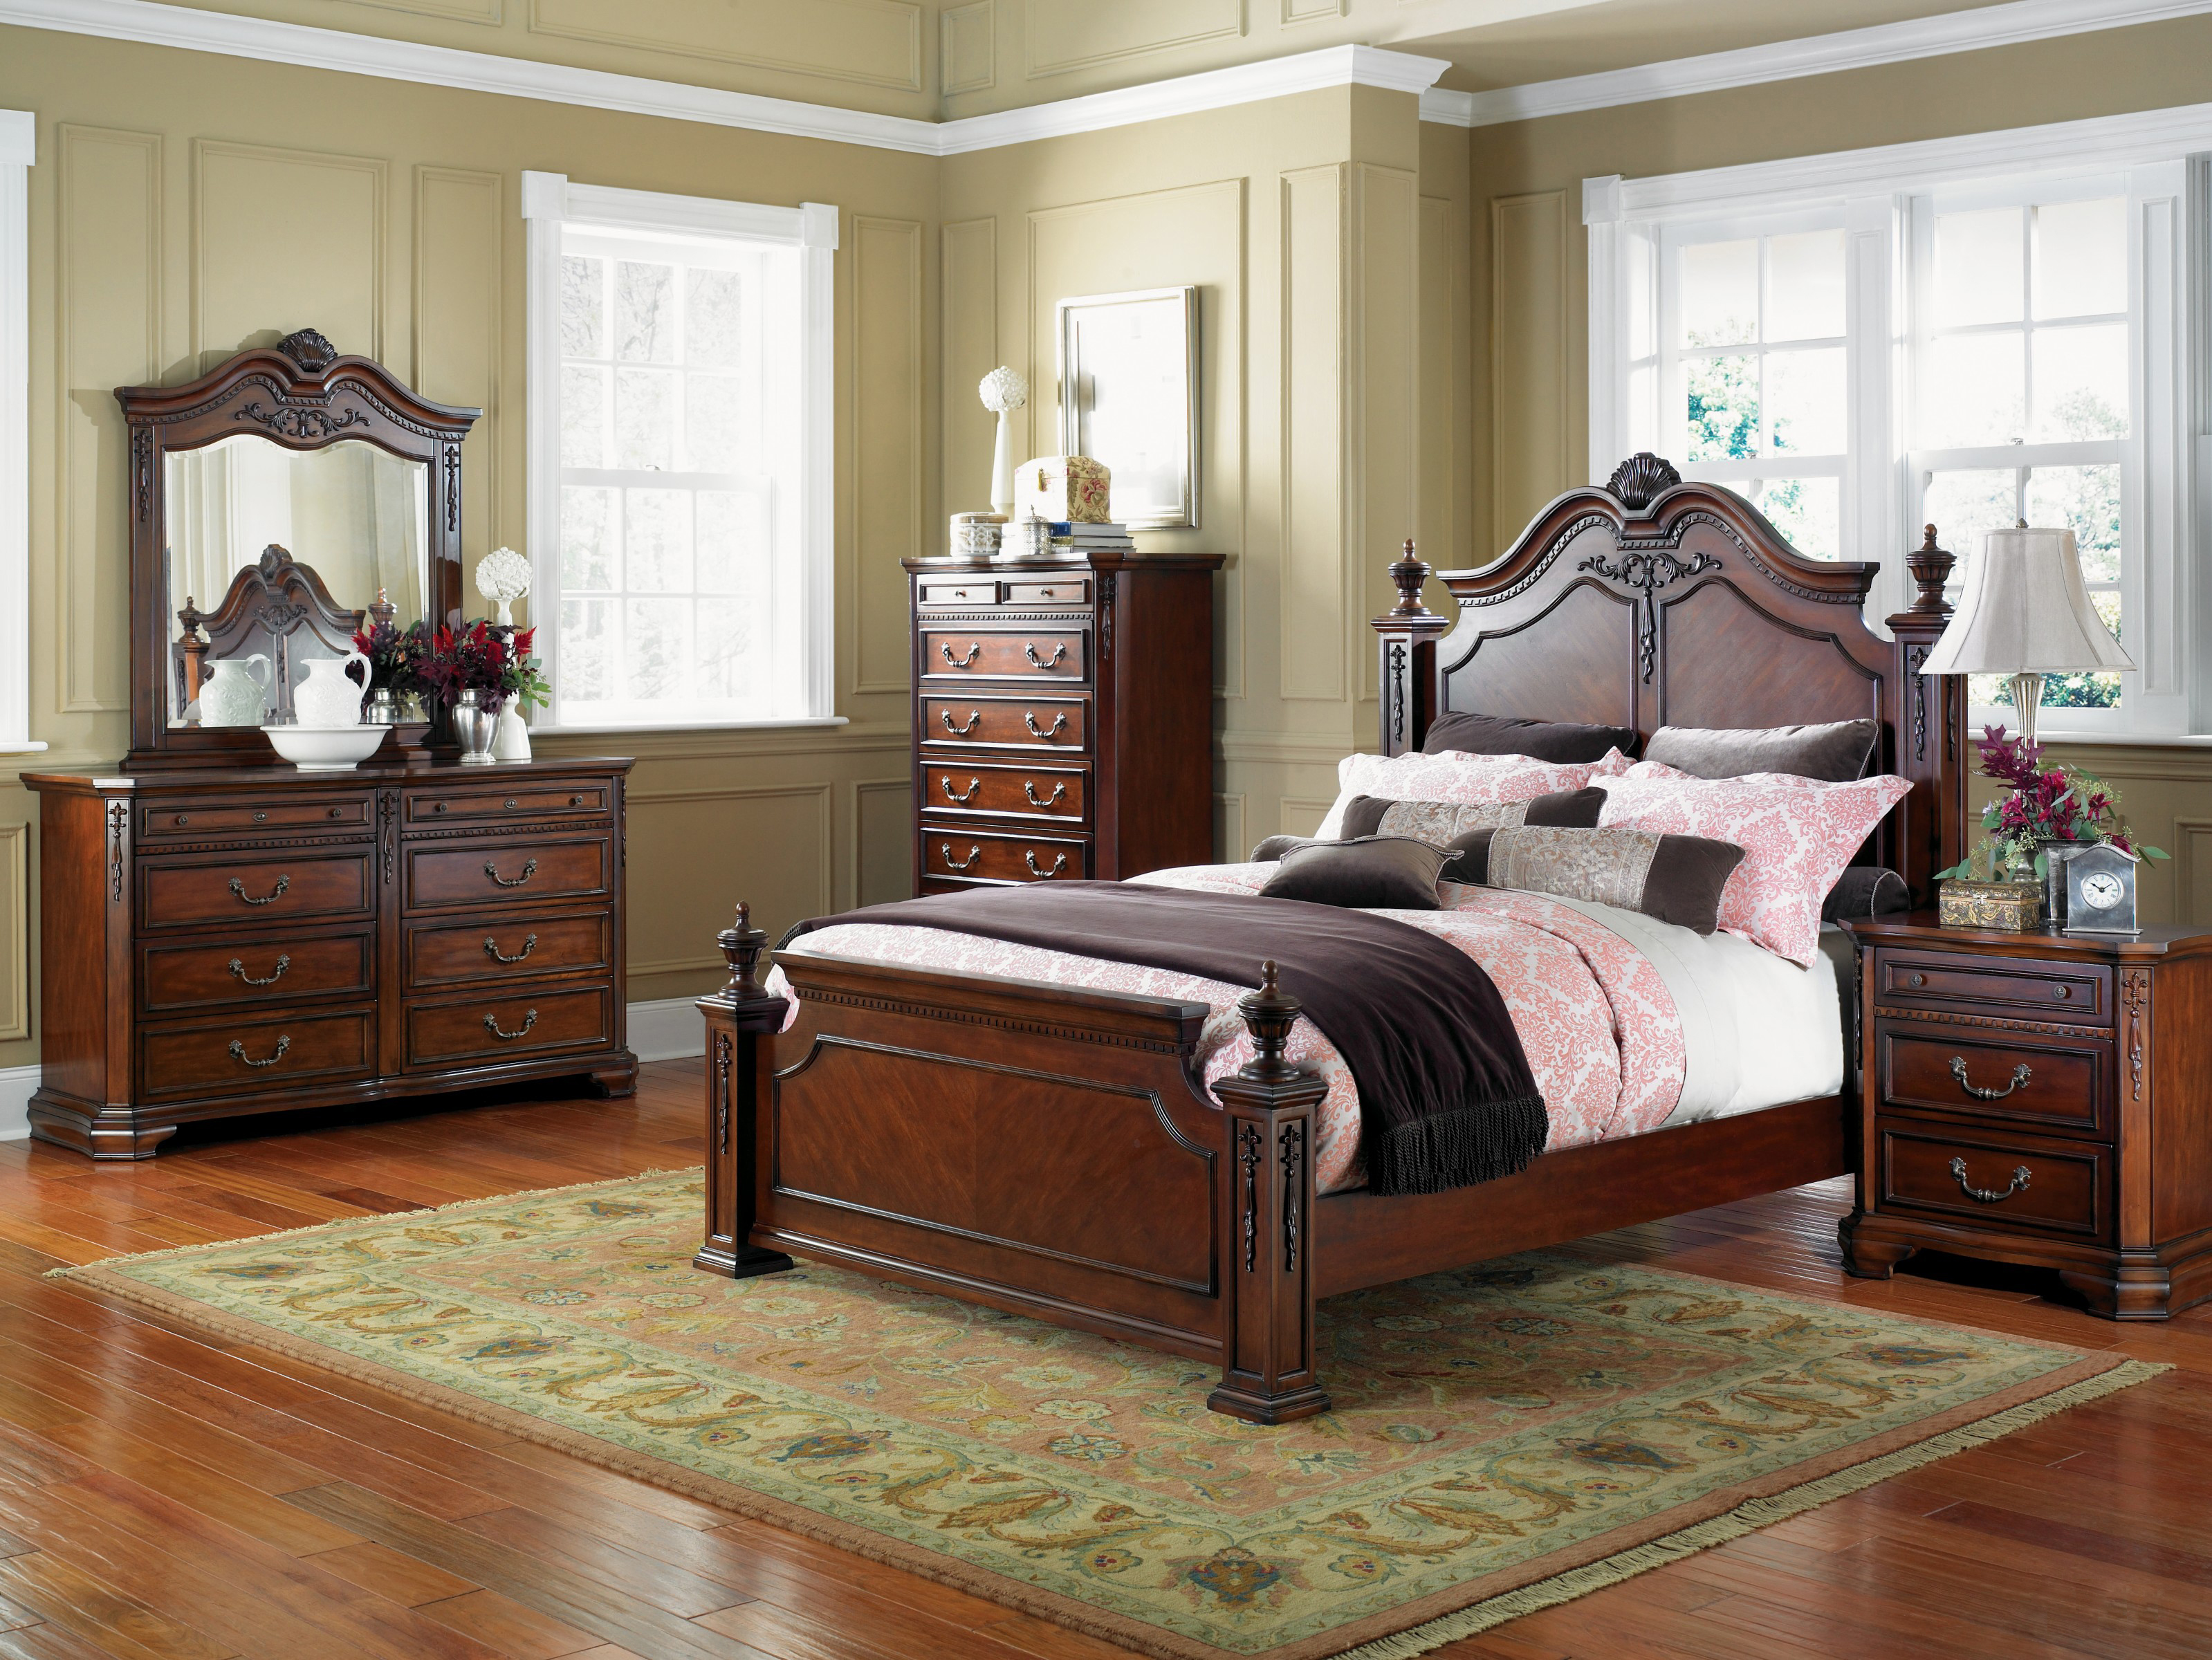 Fabulous Bedroom Furniture 3198 x 2400 · 3937 kB · jpeg